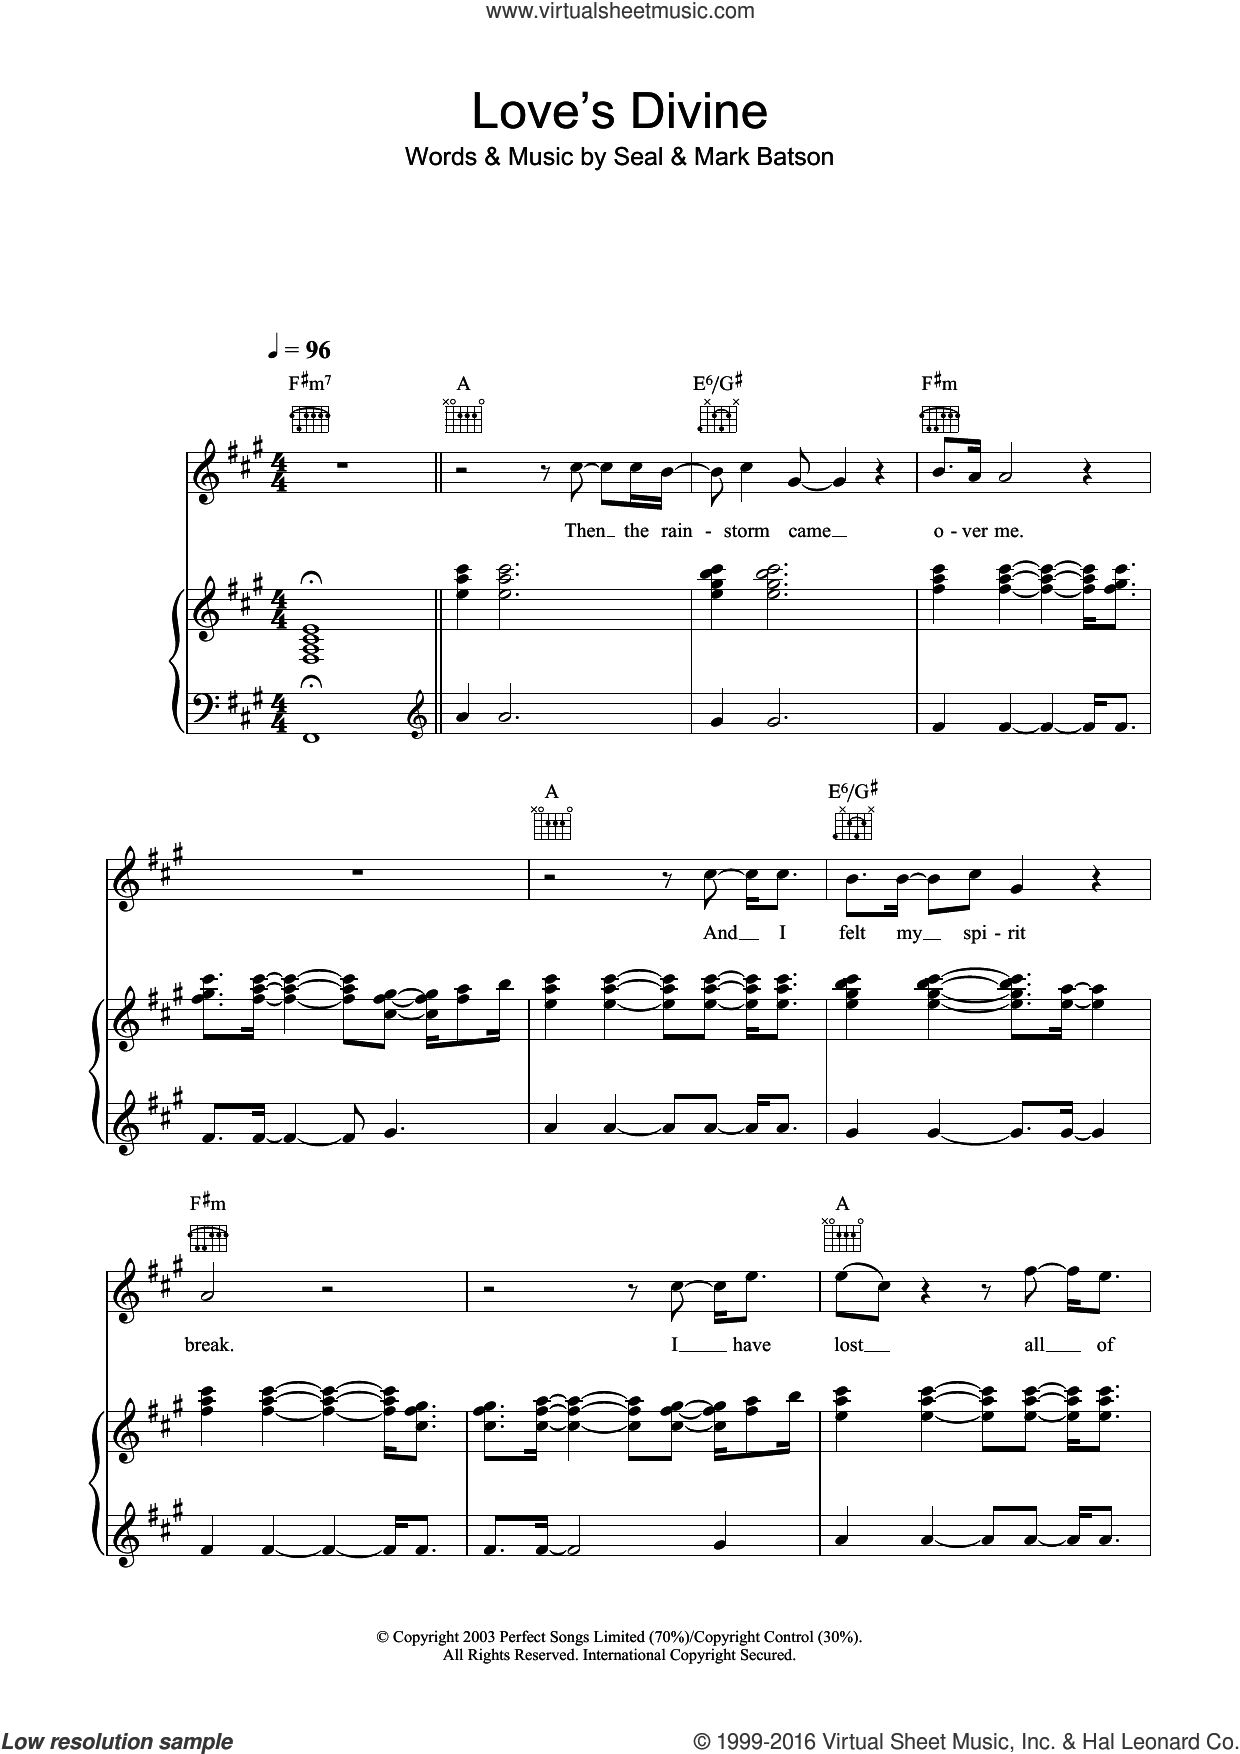 Love's Divine sheet music for voice, piano or guitar by Mark Batson and Manuel Seal. Score Image Preview.